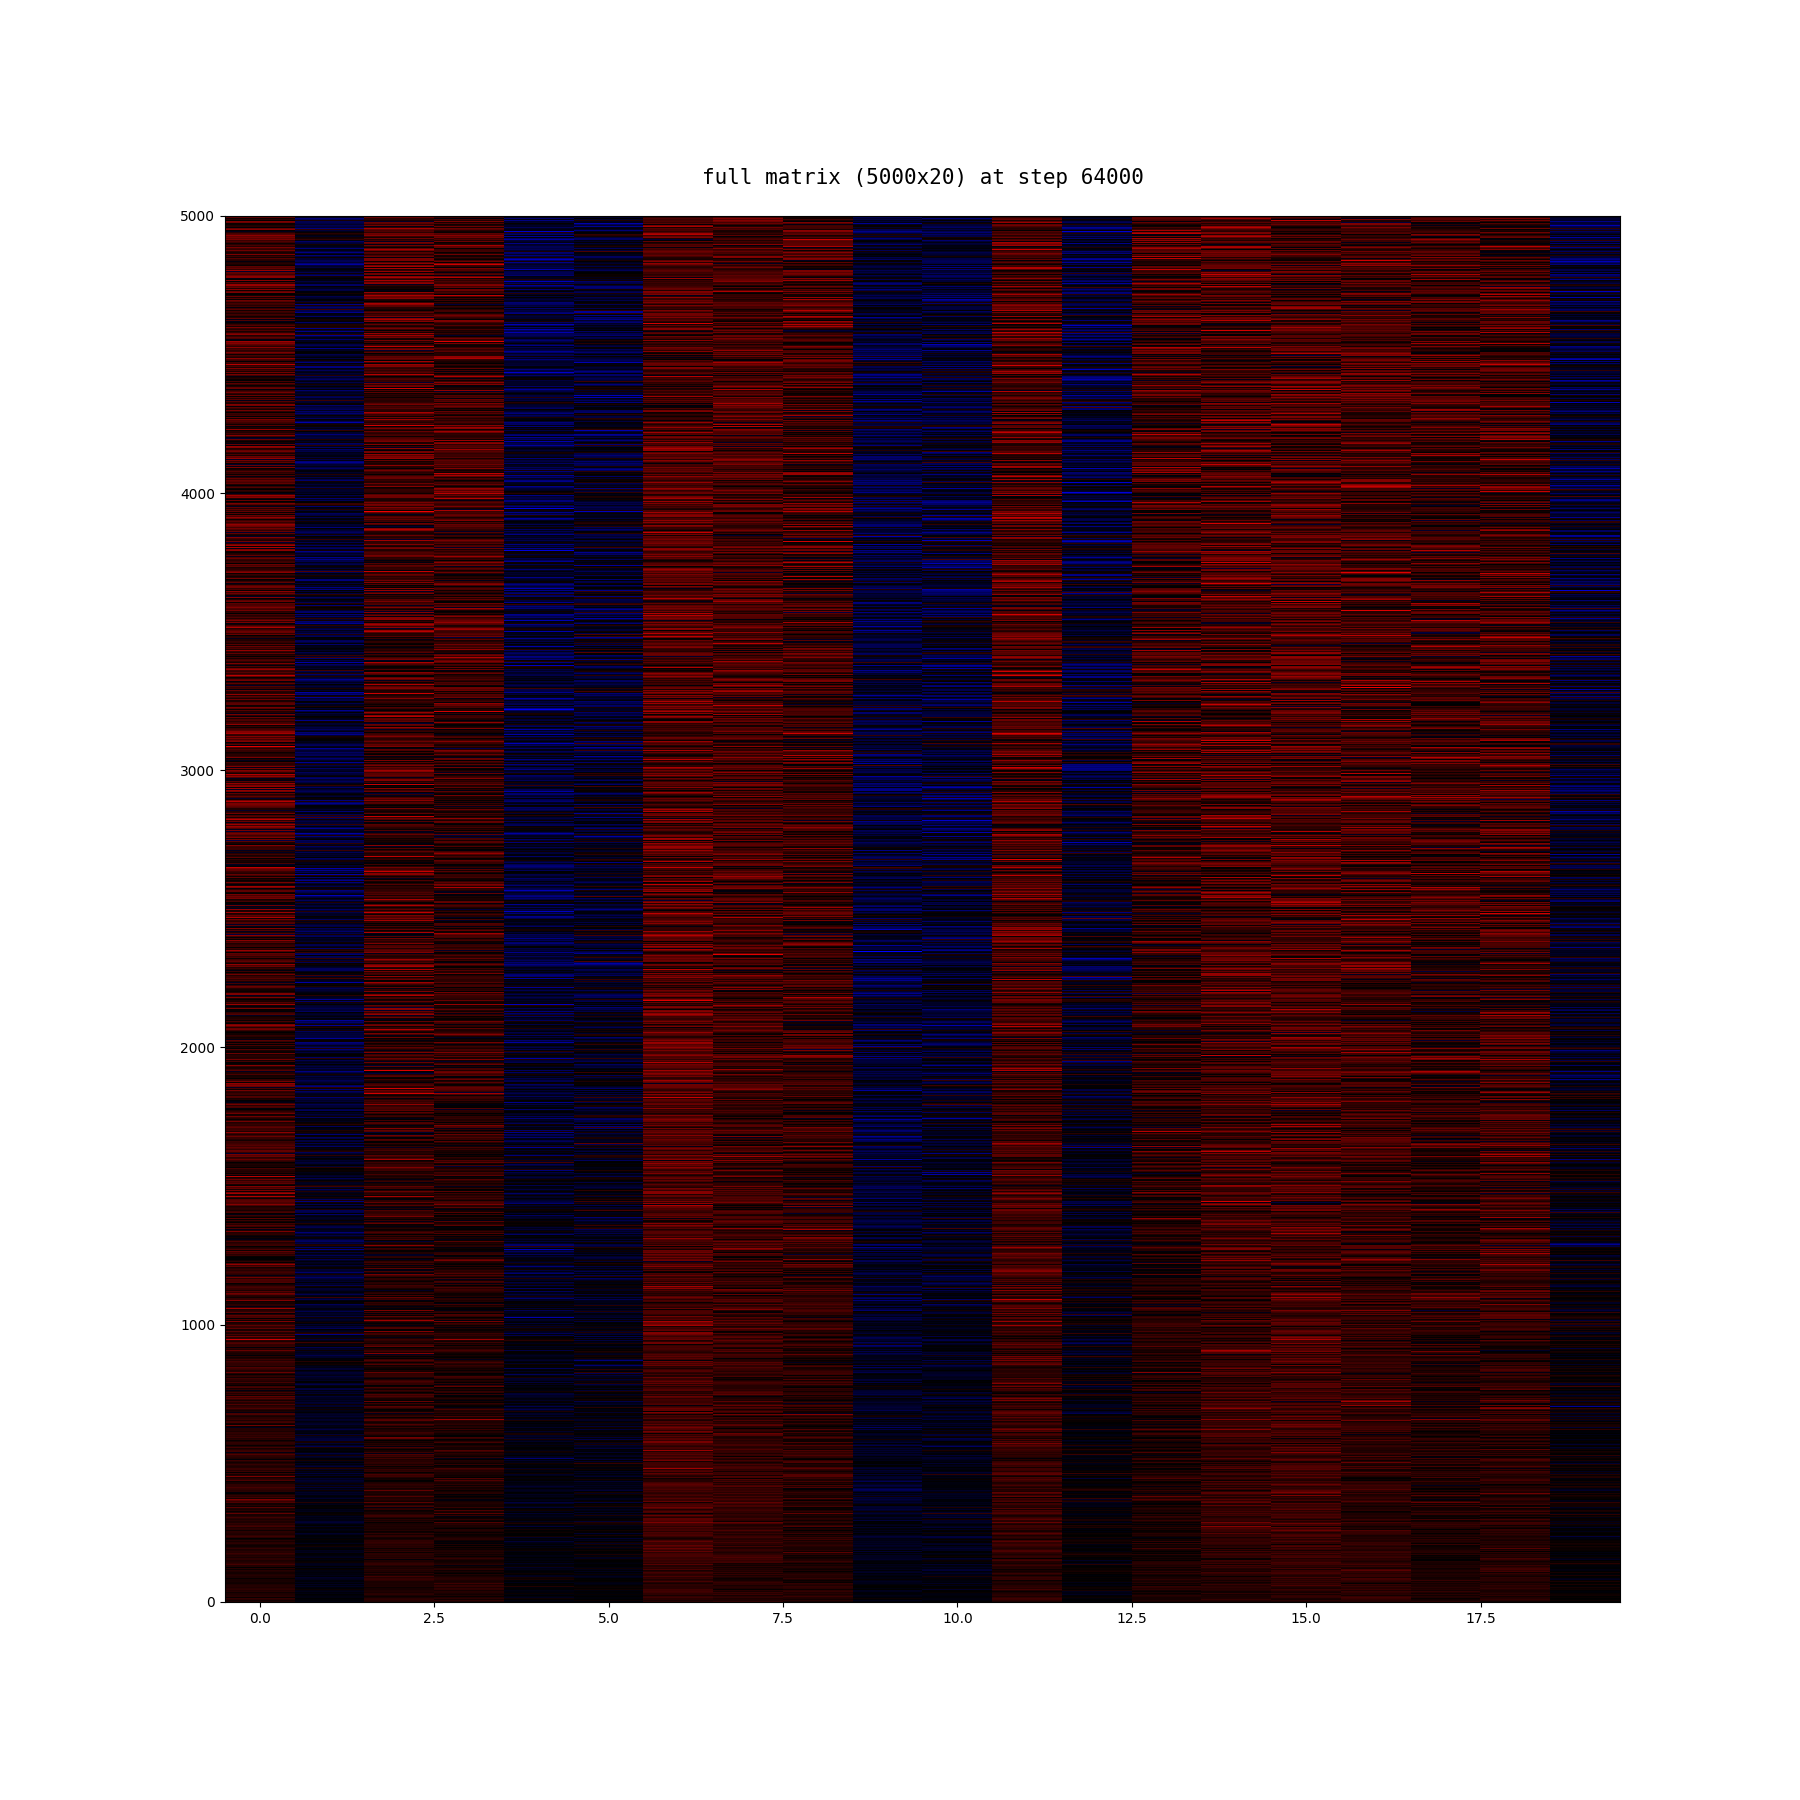 algoliterary_encounter/word2vec/plots/full-matrix/frankenstein-full-matrix-at-step_64000.png